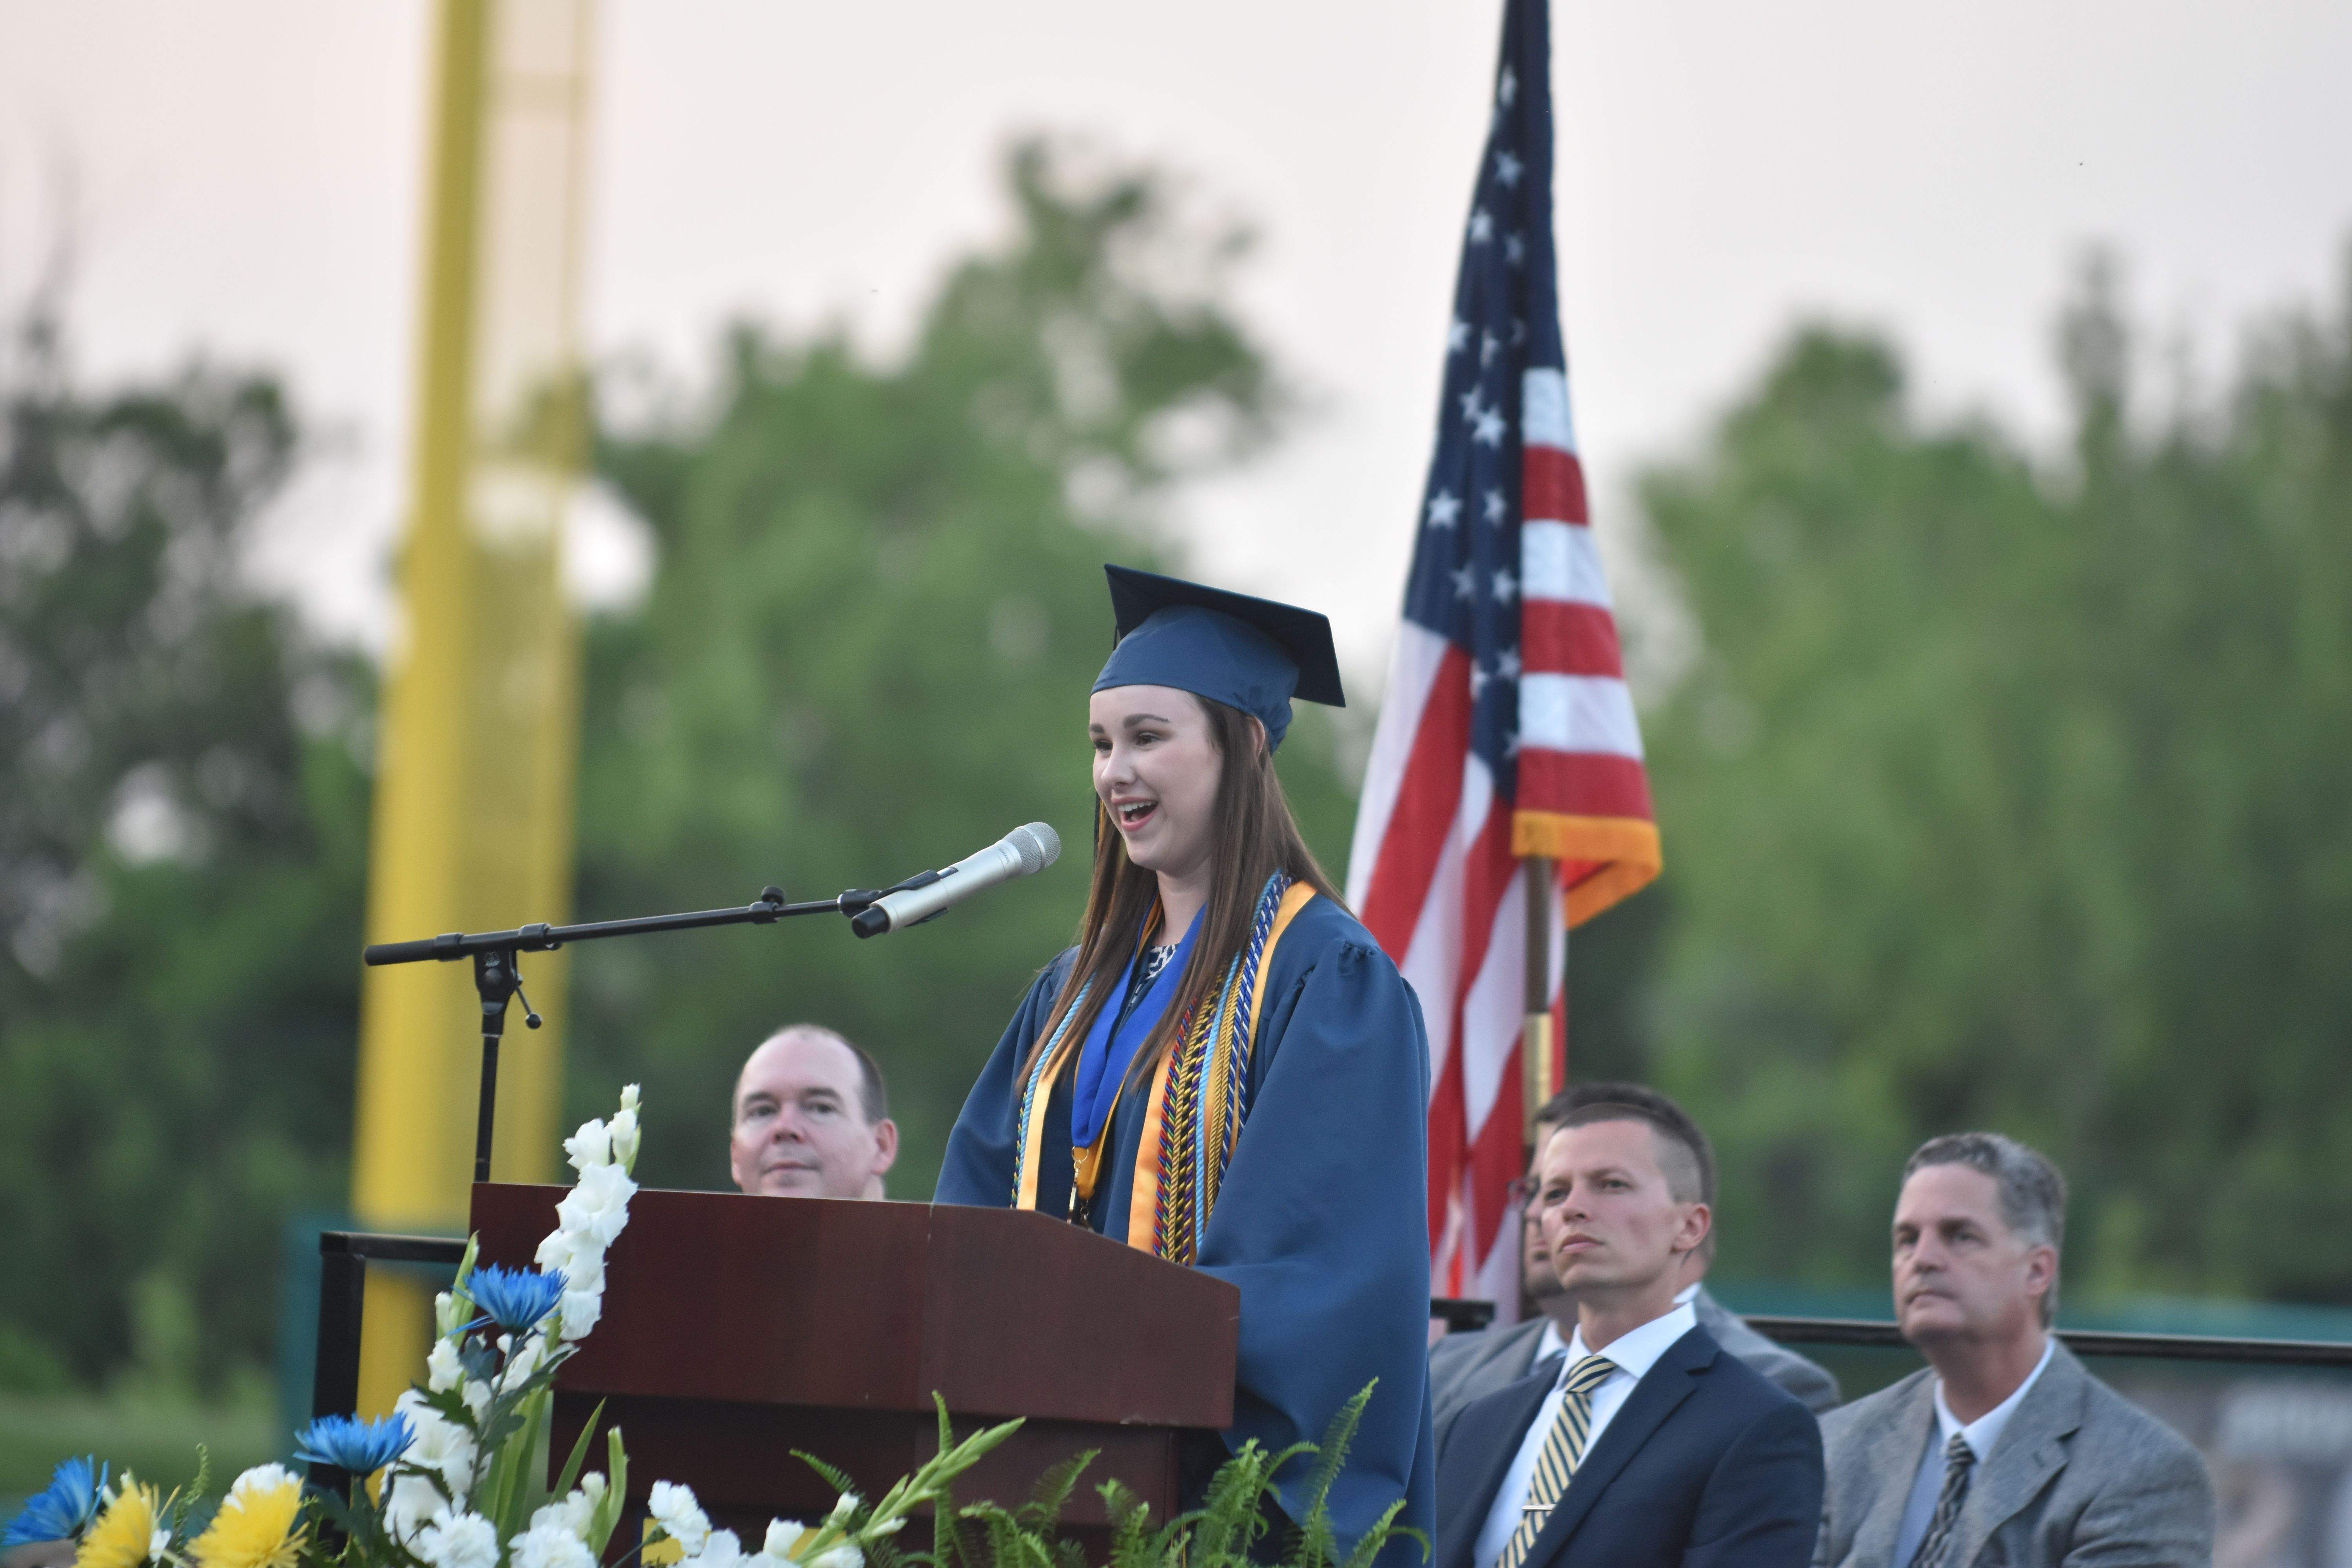 MHS valedictorian Anna Bartle is shown here delivering her address to the Class of 2017 during the commencement ceremony Thursday.